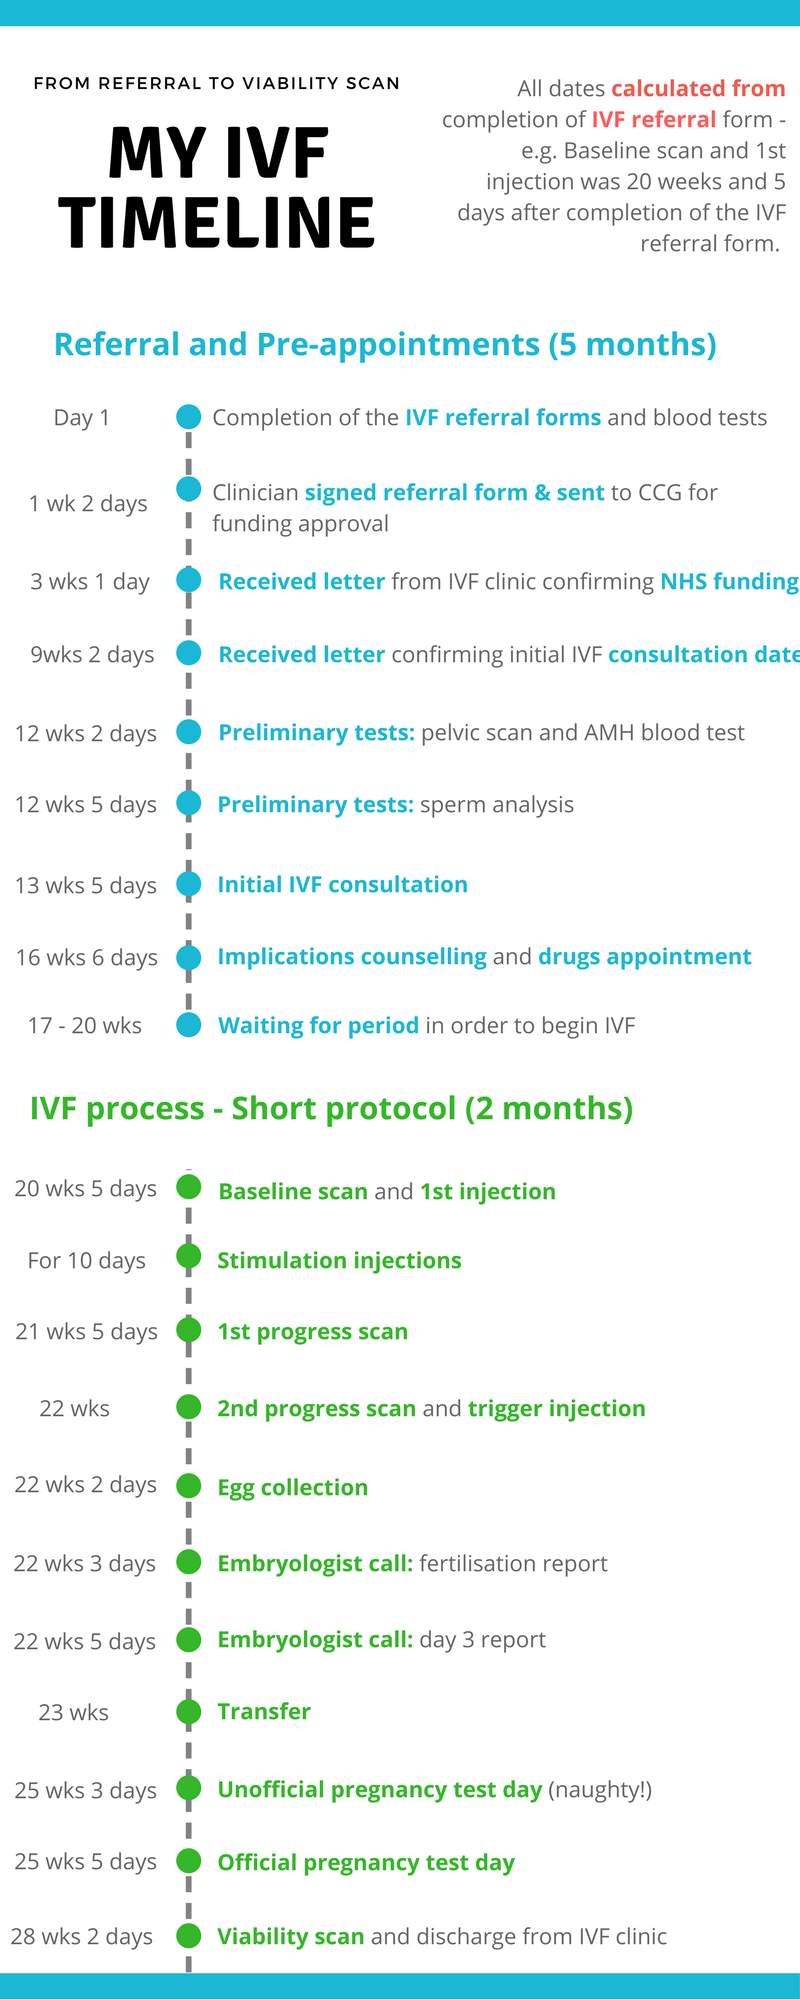 How long does it take for IVF start to finish